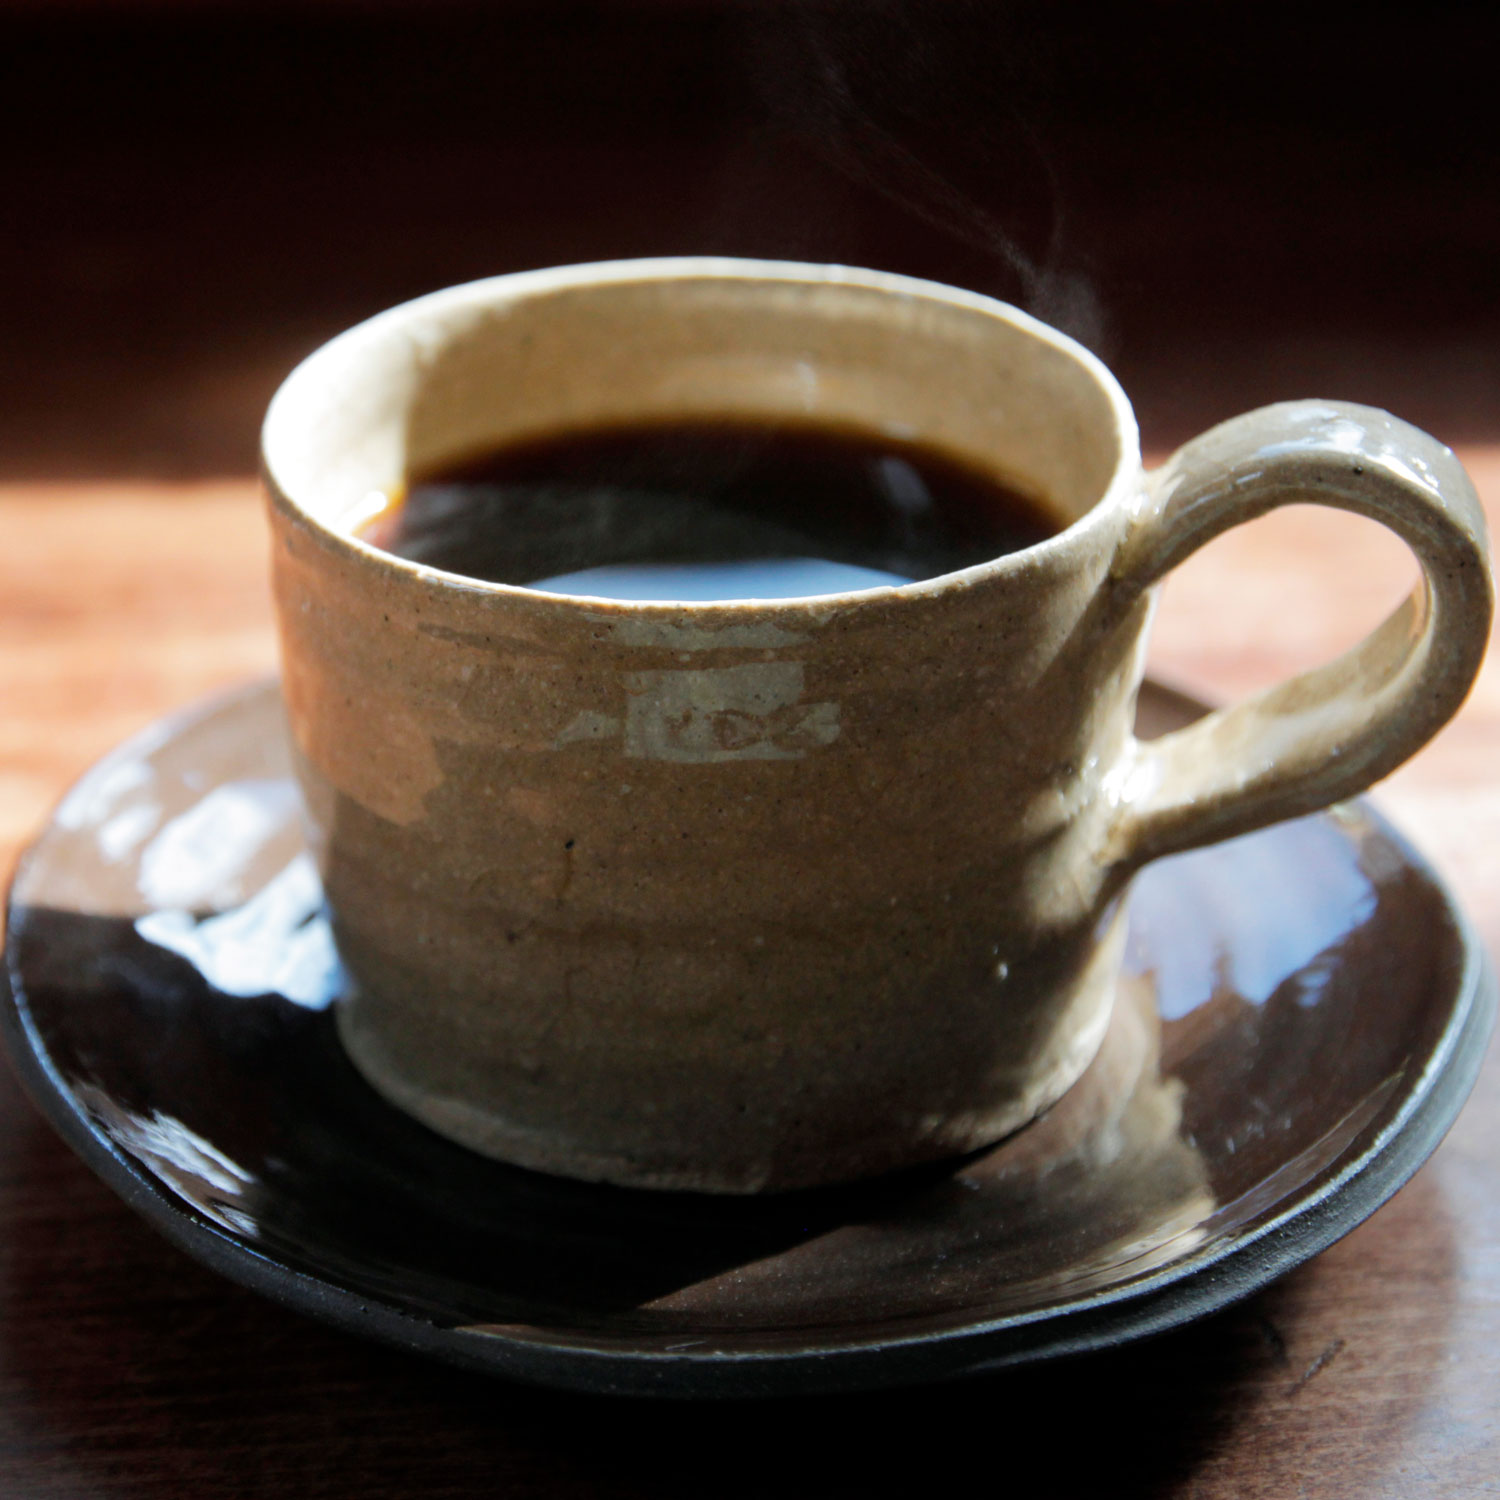 Drinking This Much Coffee or Tea Daily Was Linked to a 63% Lower Mortality Risk in People with Type 2 Diabetes